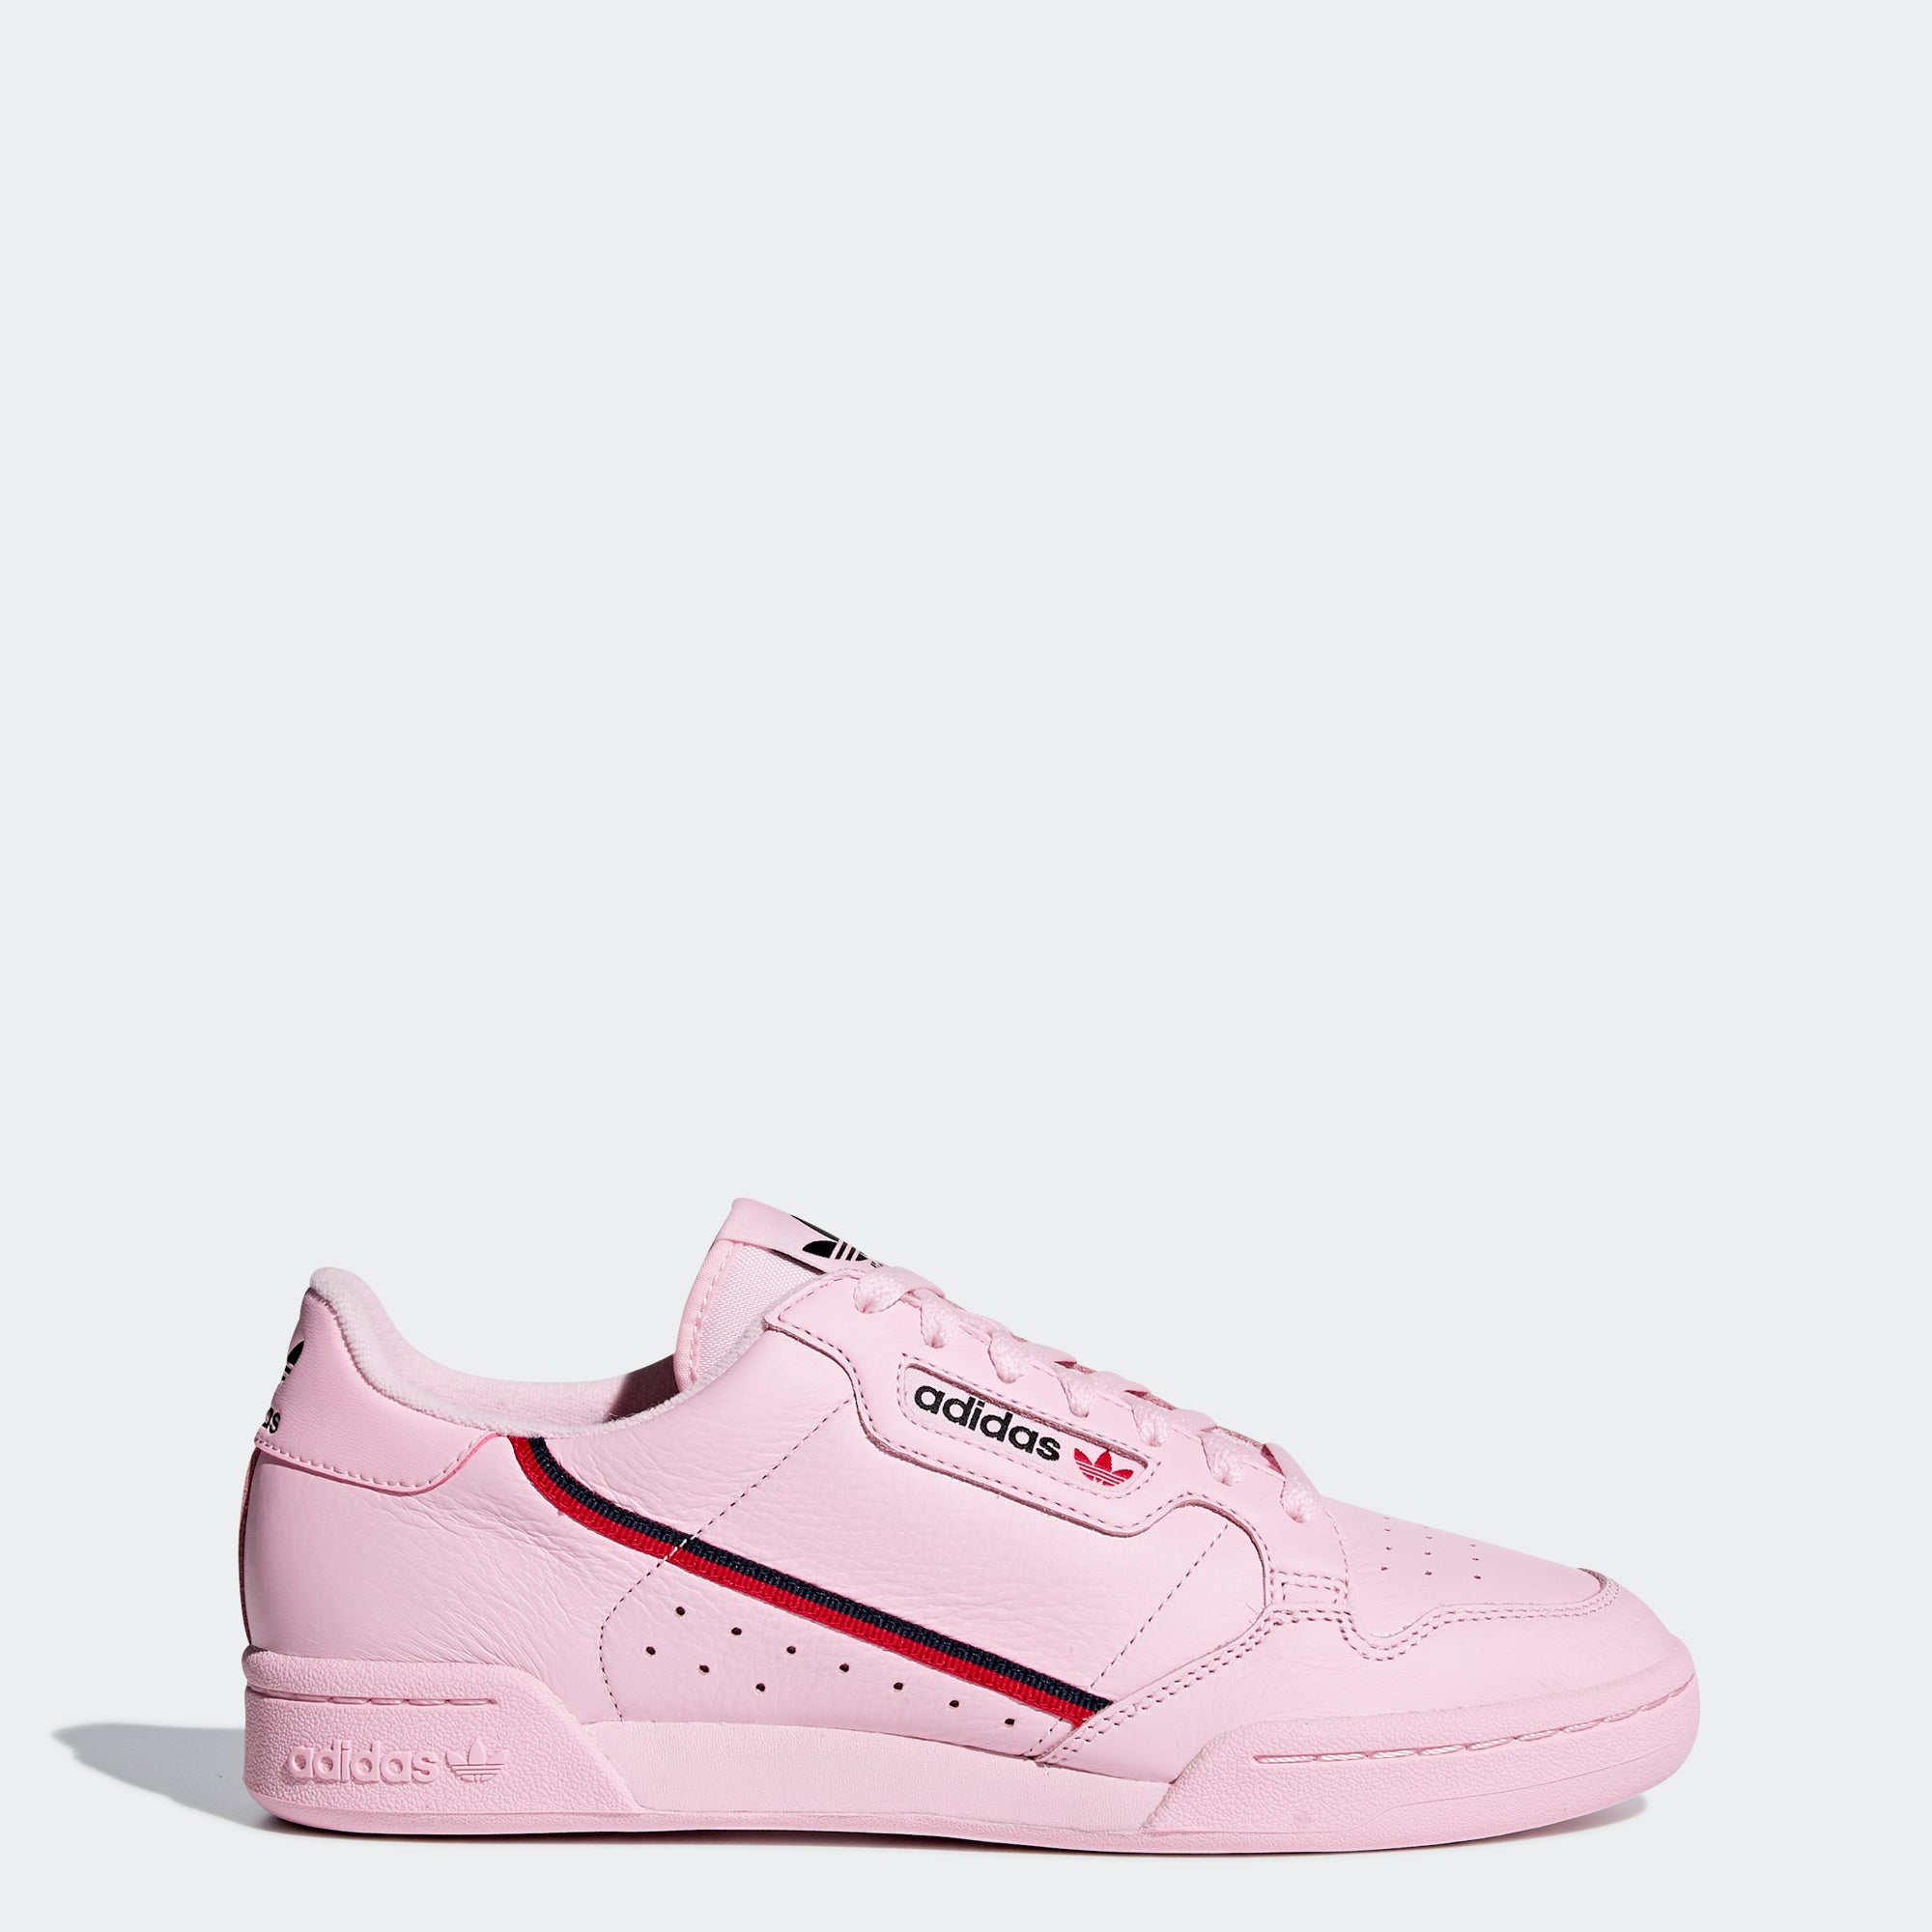 a082fca58be9 Men s adidas Originals Continental 80 Shoes Clear Pink